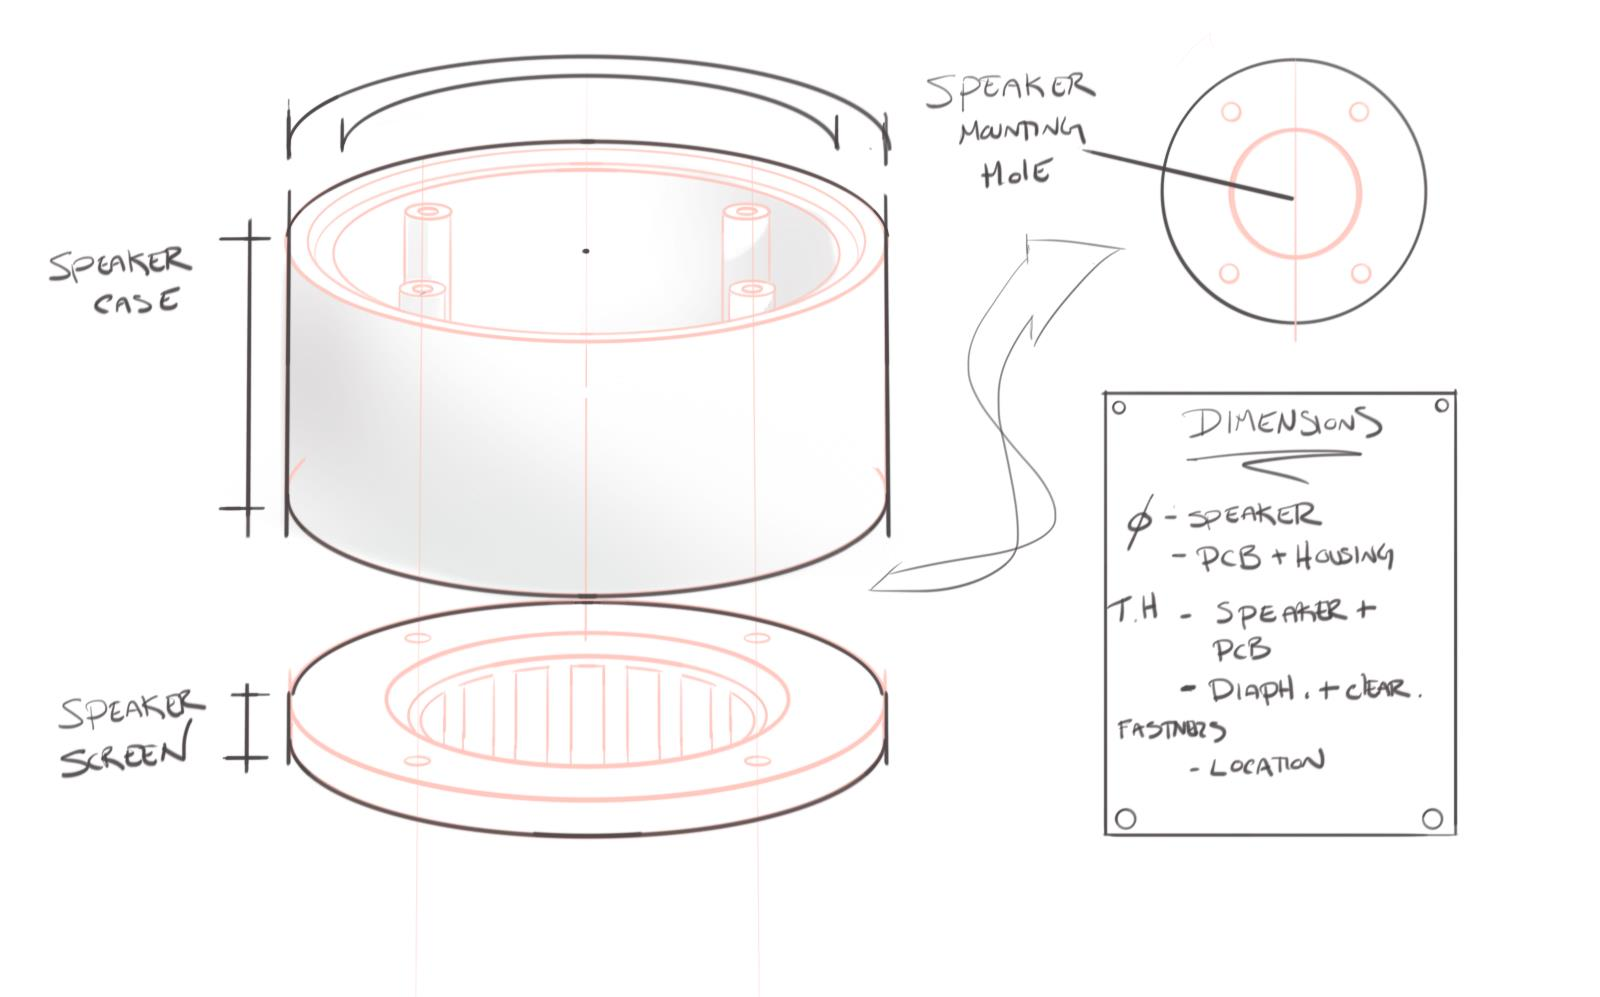 Picture of Step 4: Designing the New Speaker Case